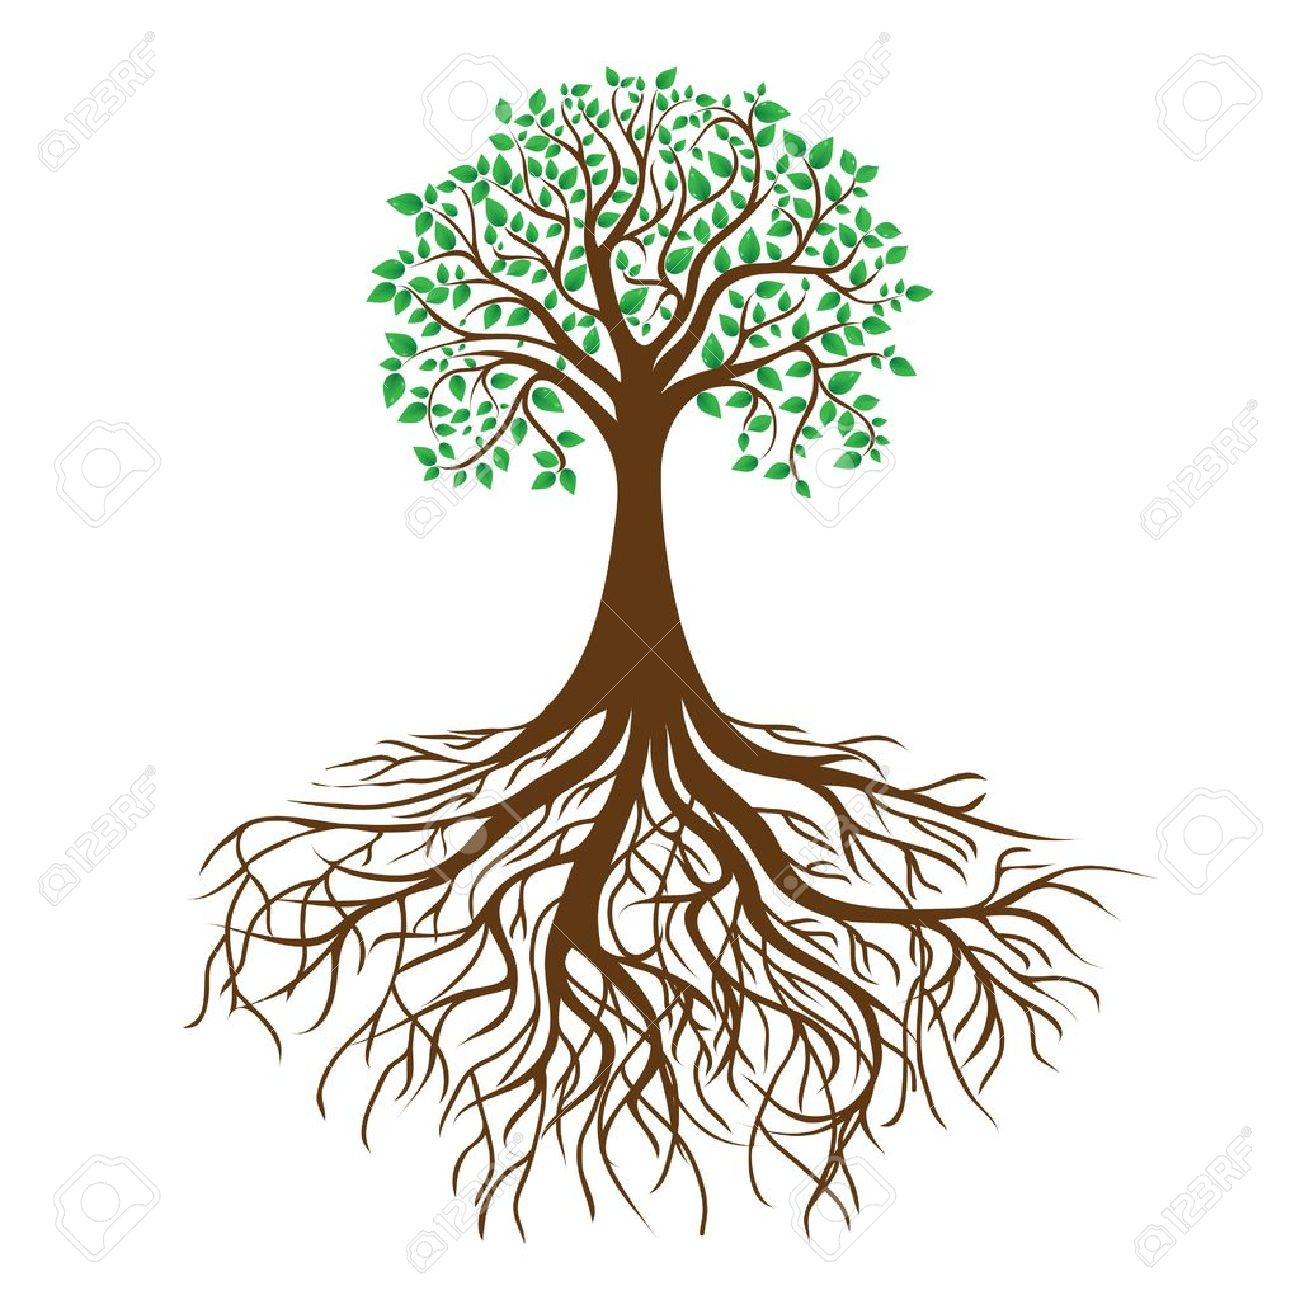 tree with roots and dense foliage Stock Vector - 13610589